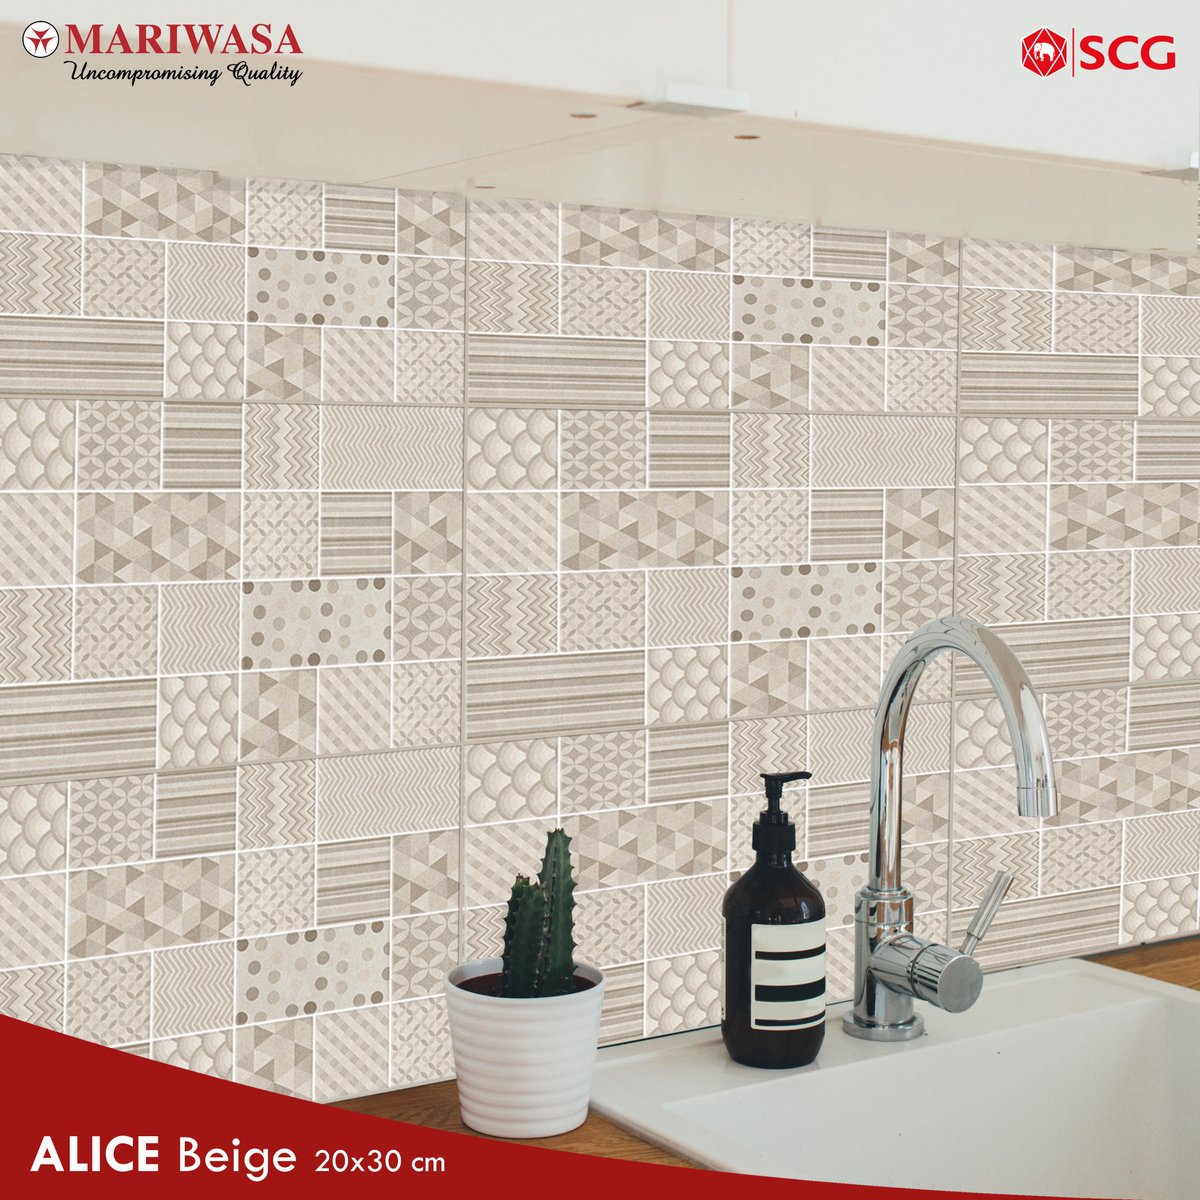 Mariwasa On Twitter The Pattern Of Our Alice Series Gives Your Kitchen Walls An Instant Character And Charm Tile Size 20x30cm Available Colors Beige White Suitable For Bathroom